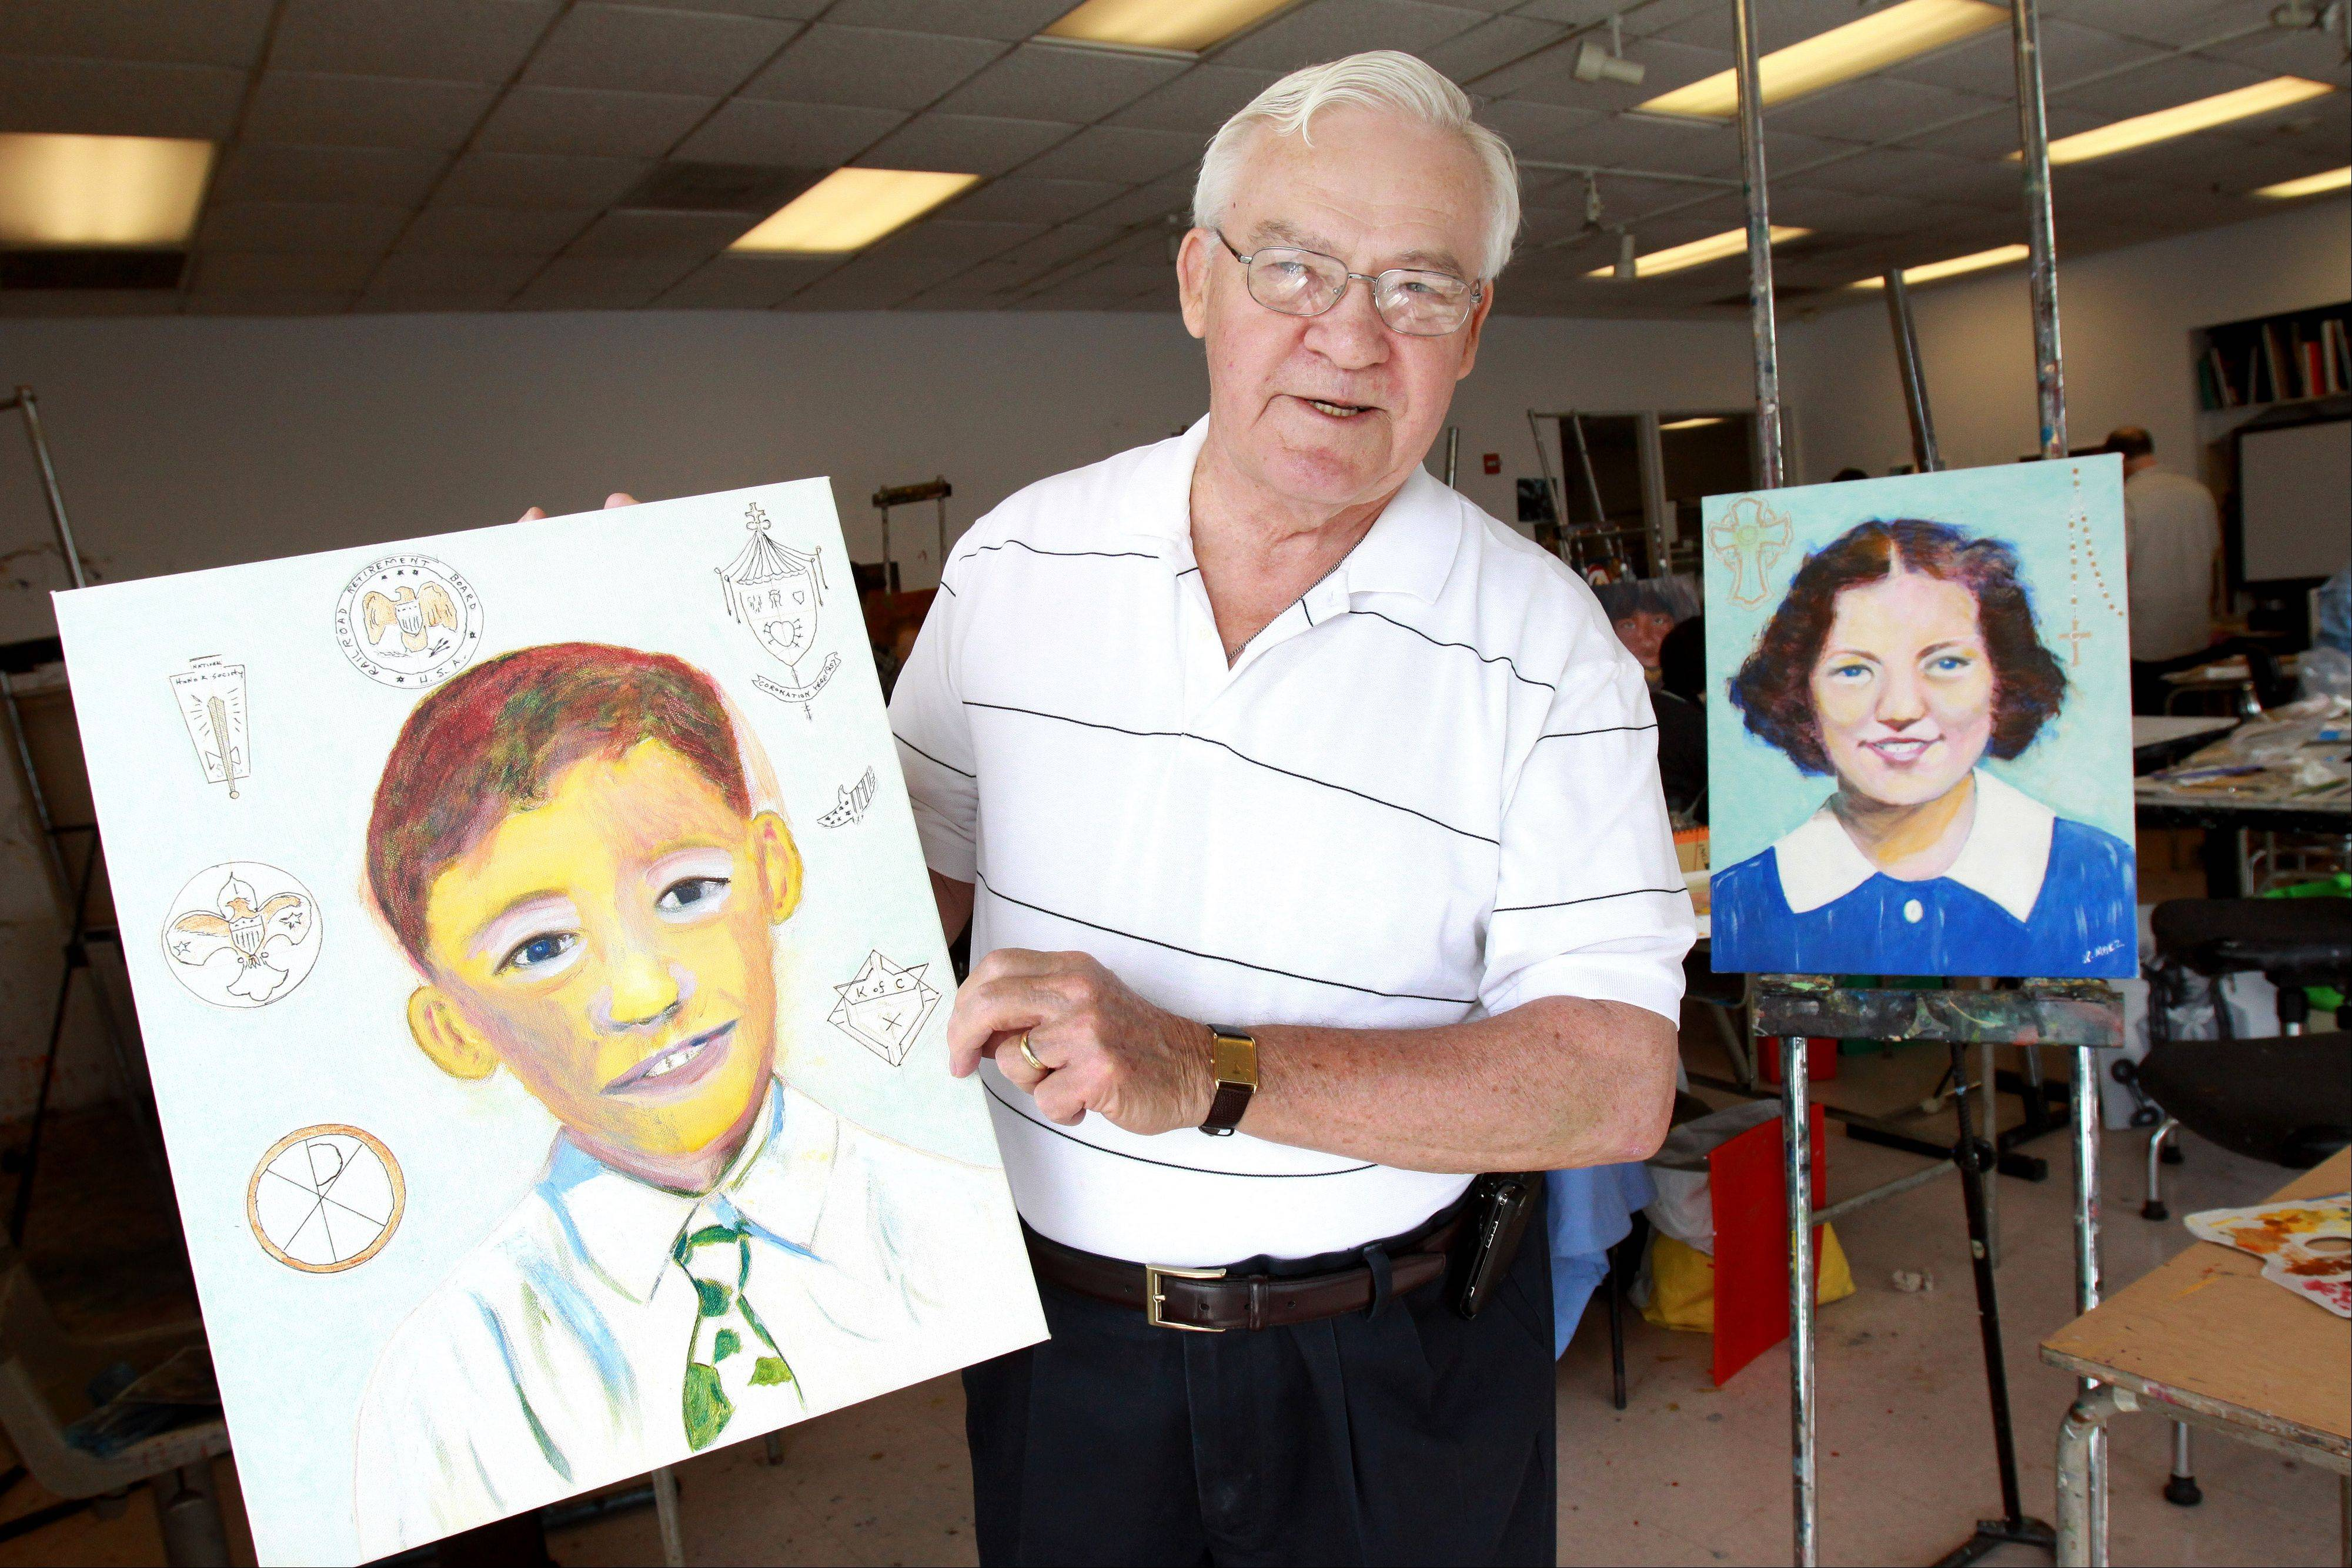 Ken Marz of Glen Ellyn, a graduate of Maternity B.V.M., shows a portrait he did of himself as a student and one of a friend of his wife who also went to the school.